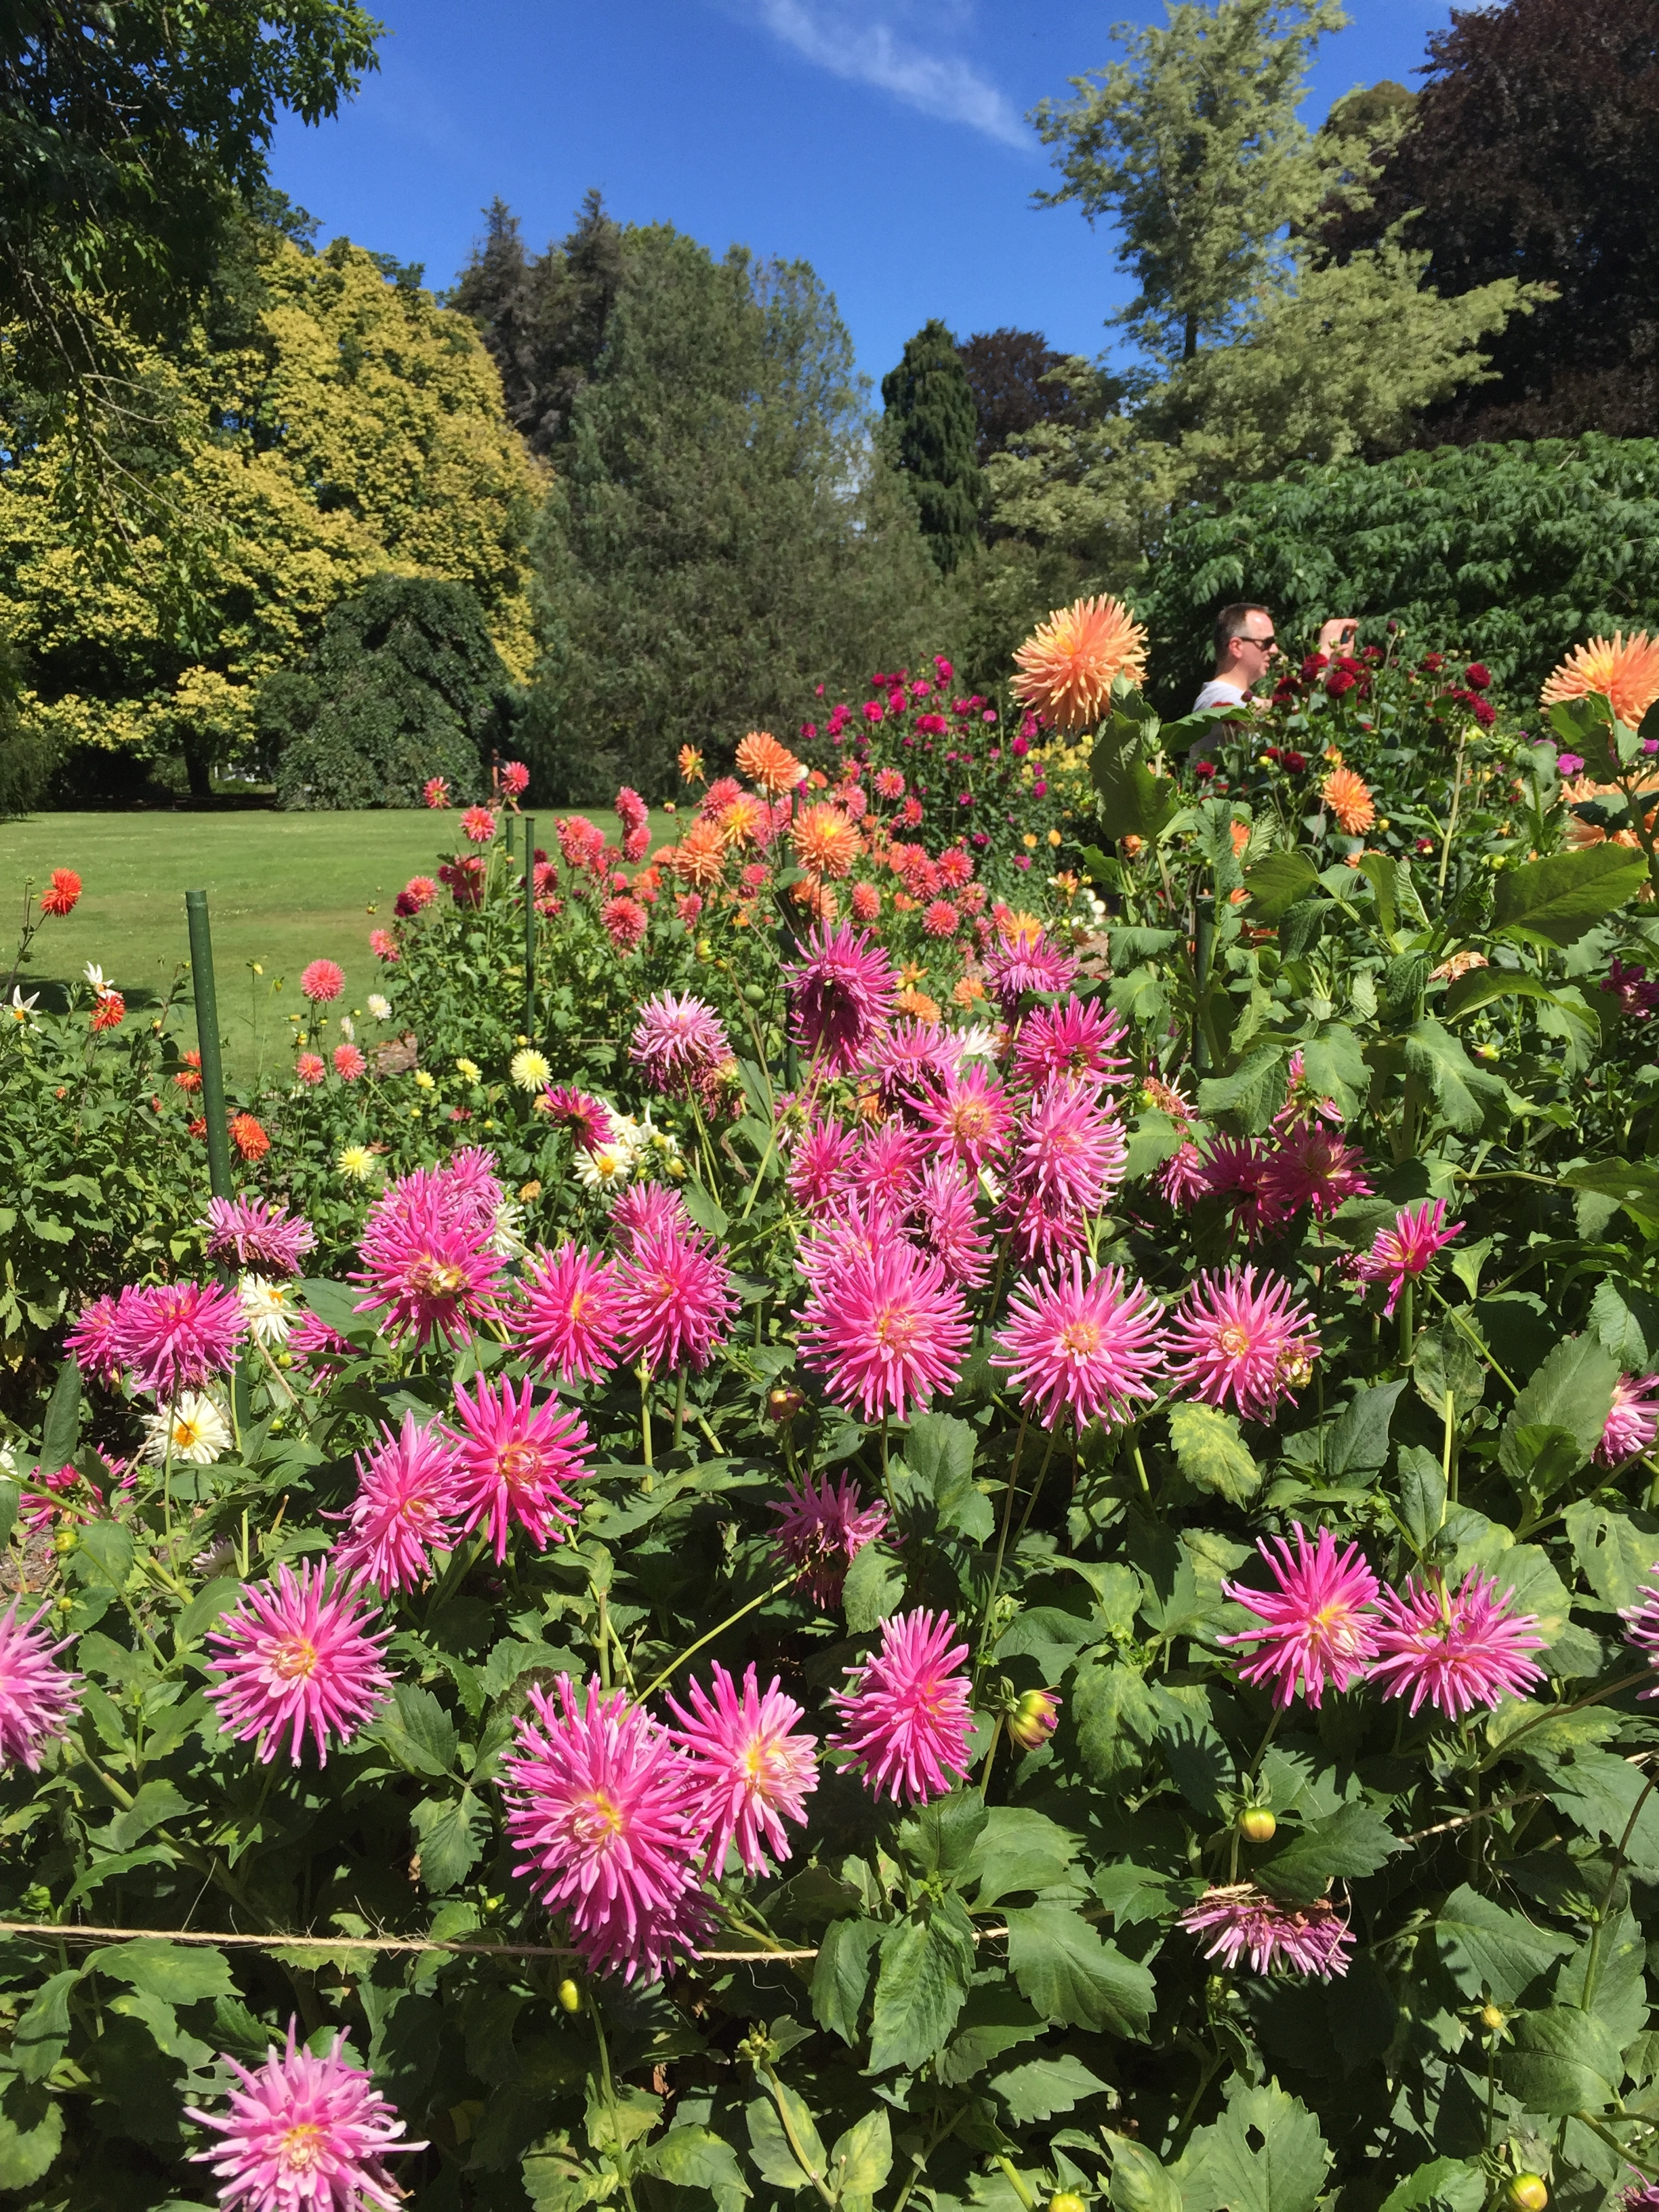 Dahlias in the wonderful Botanic Gardens in Christchurch, New Zealand, which I visited in 2016.